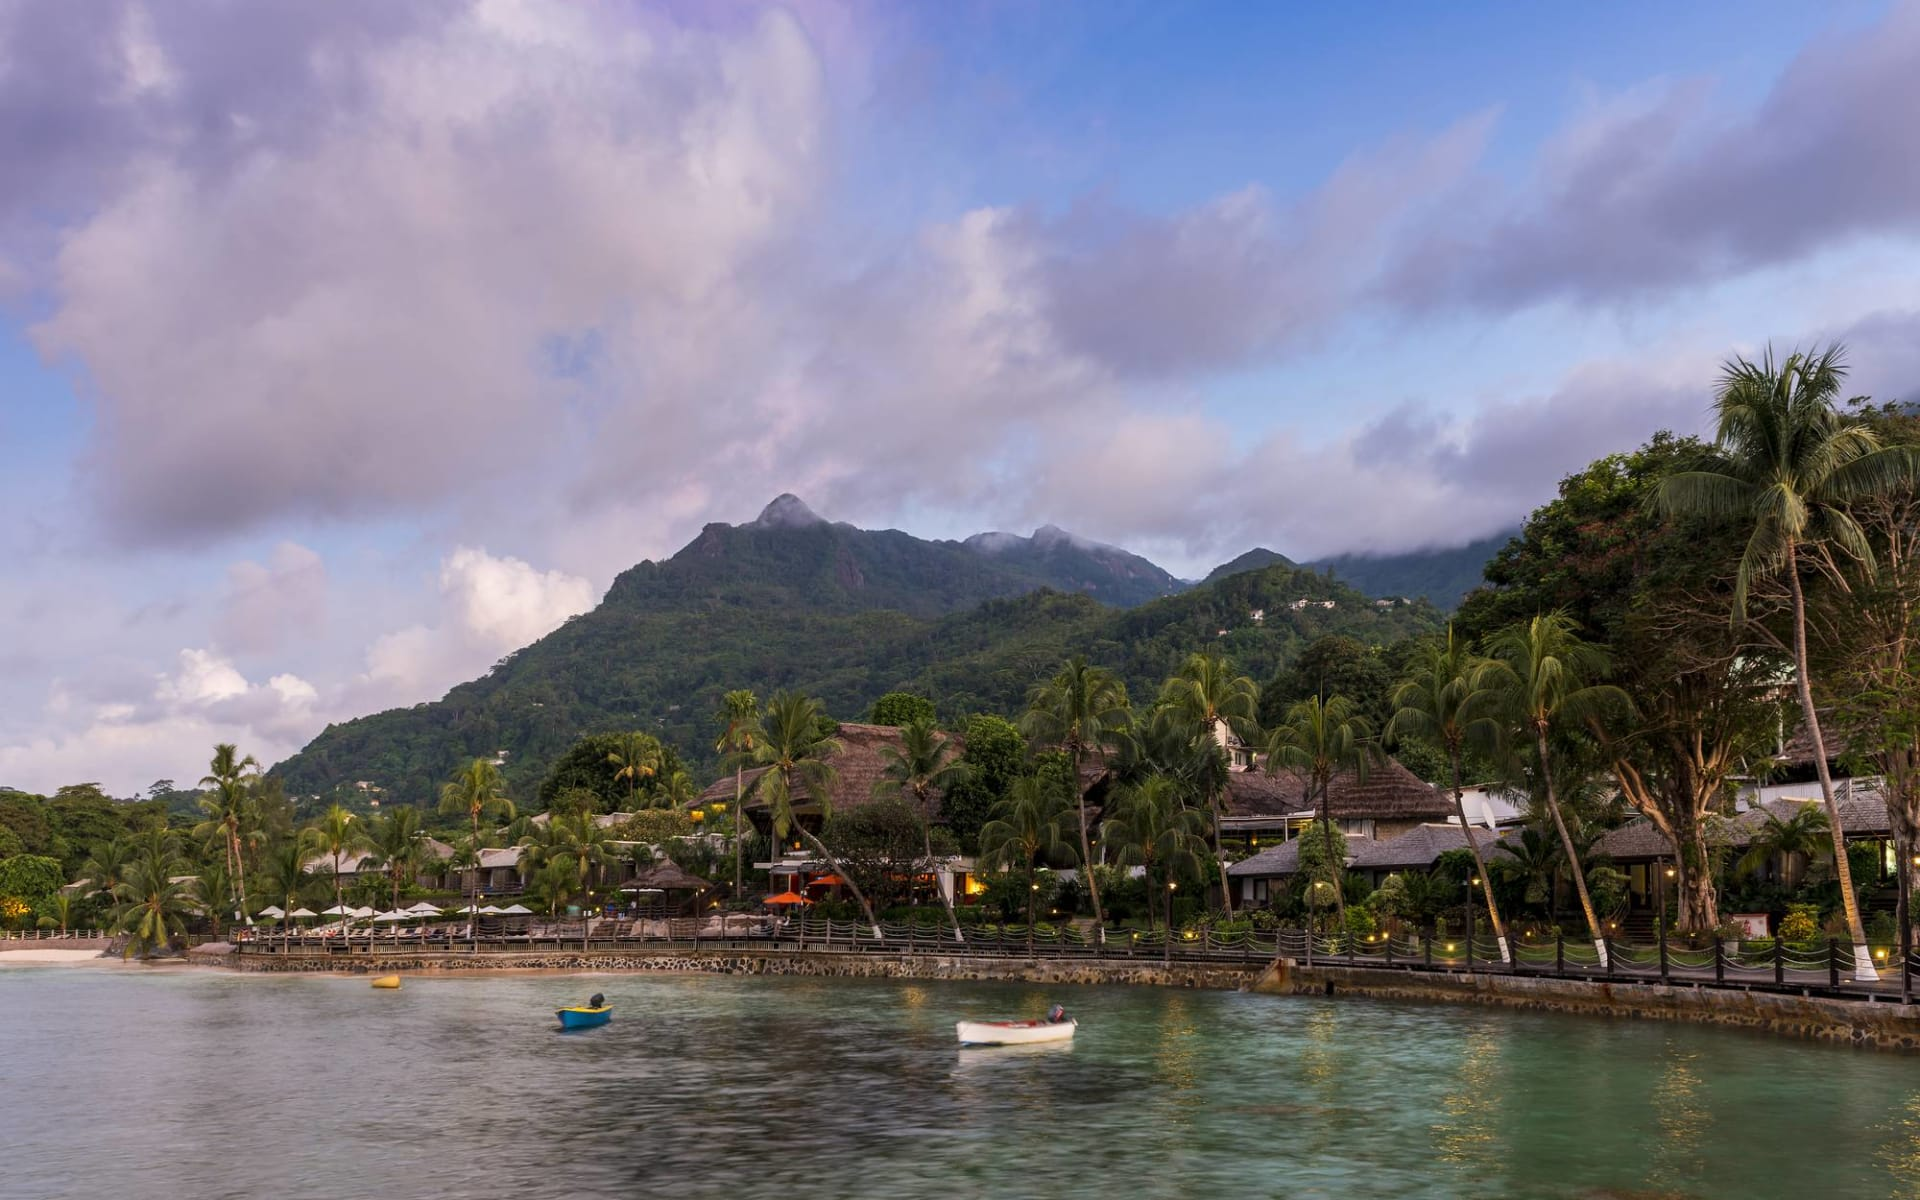 Fisherman's Cove Resort in Mahé: